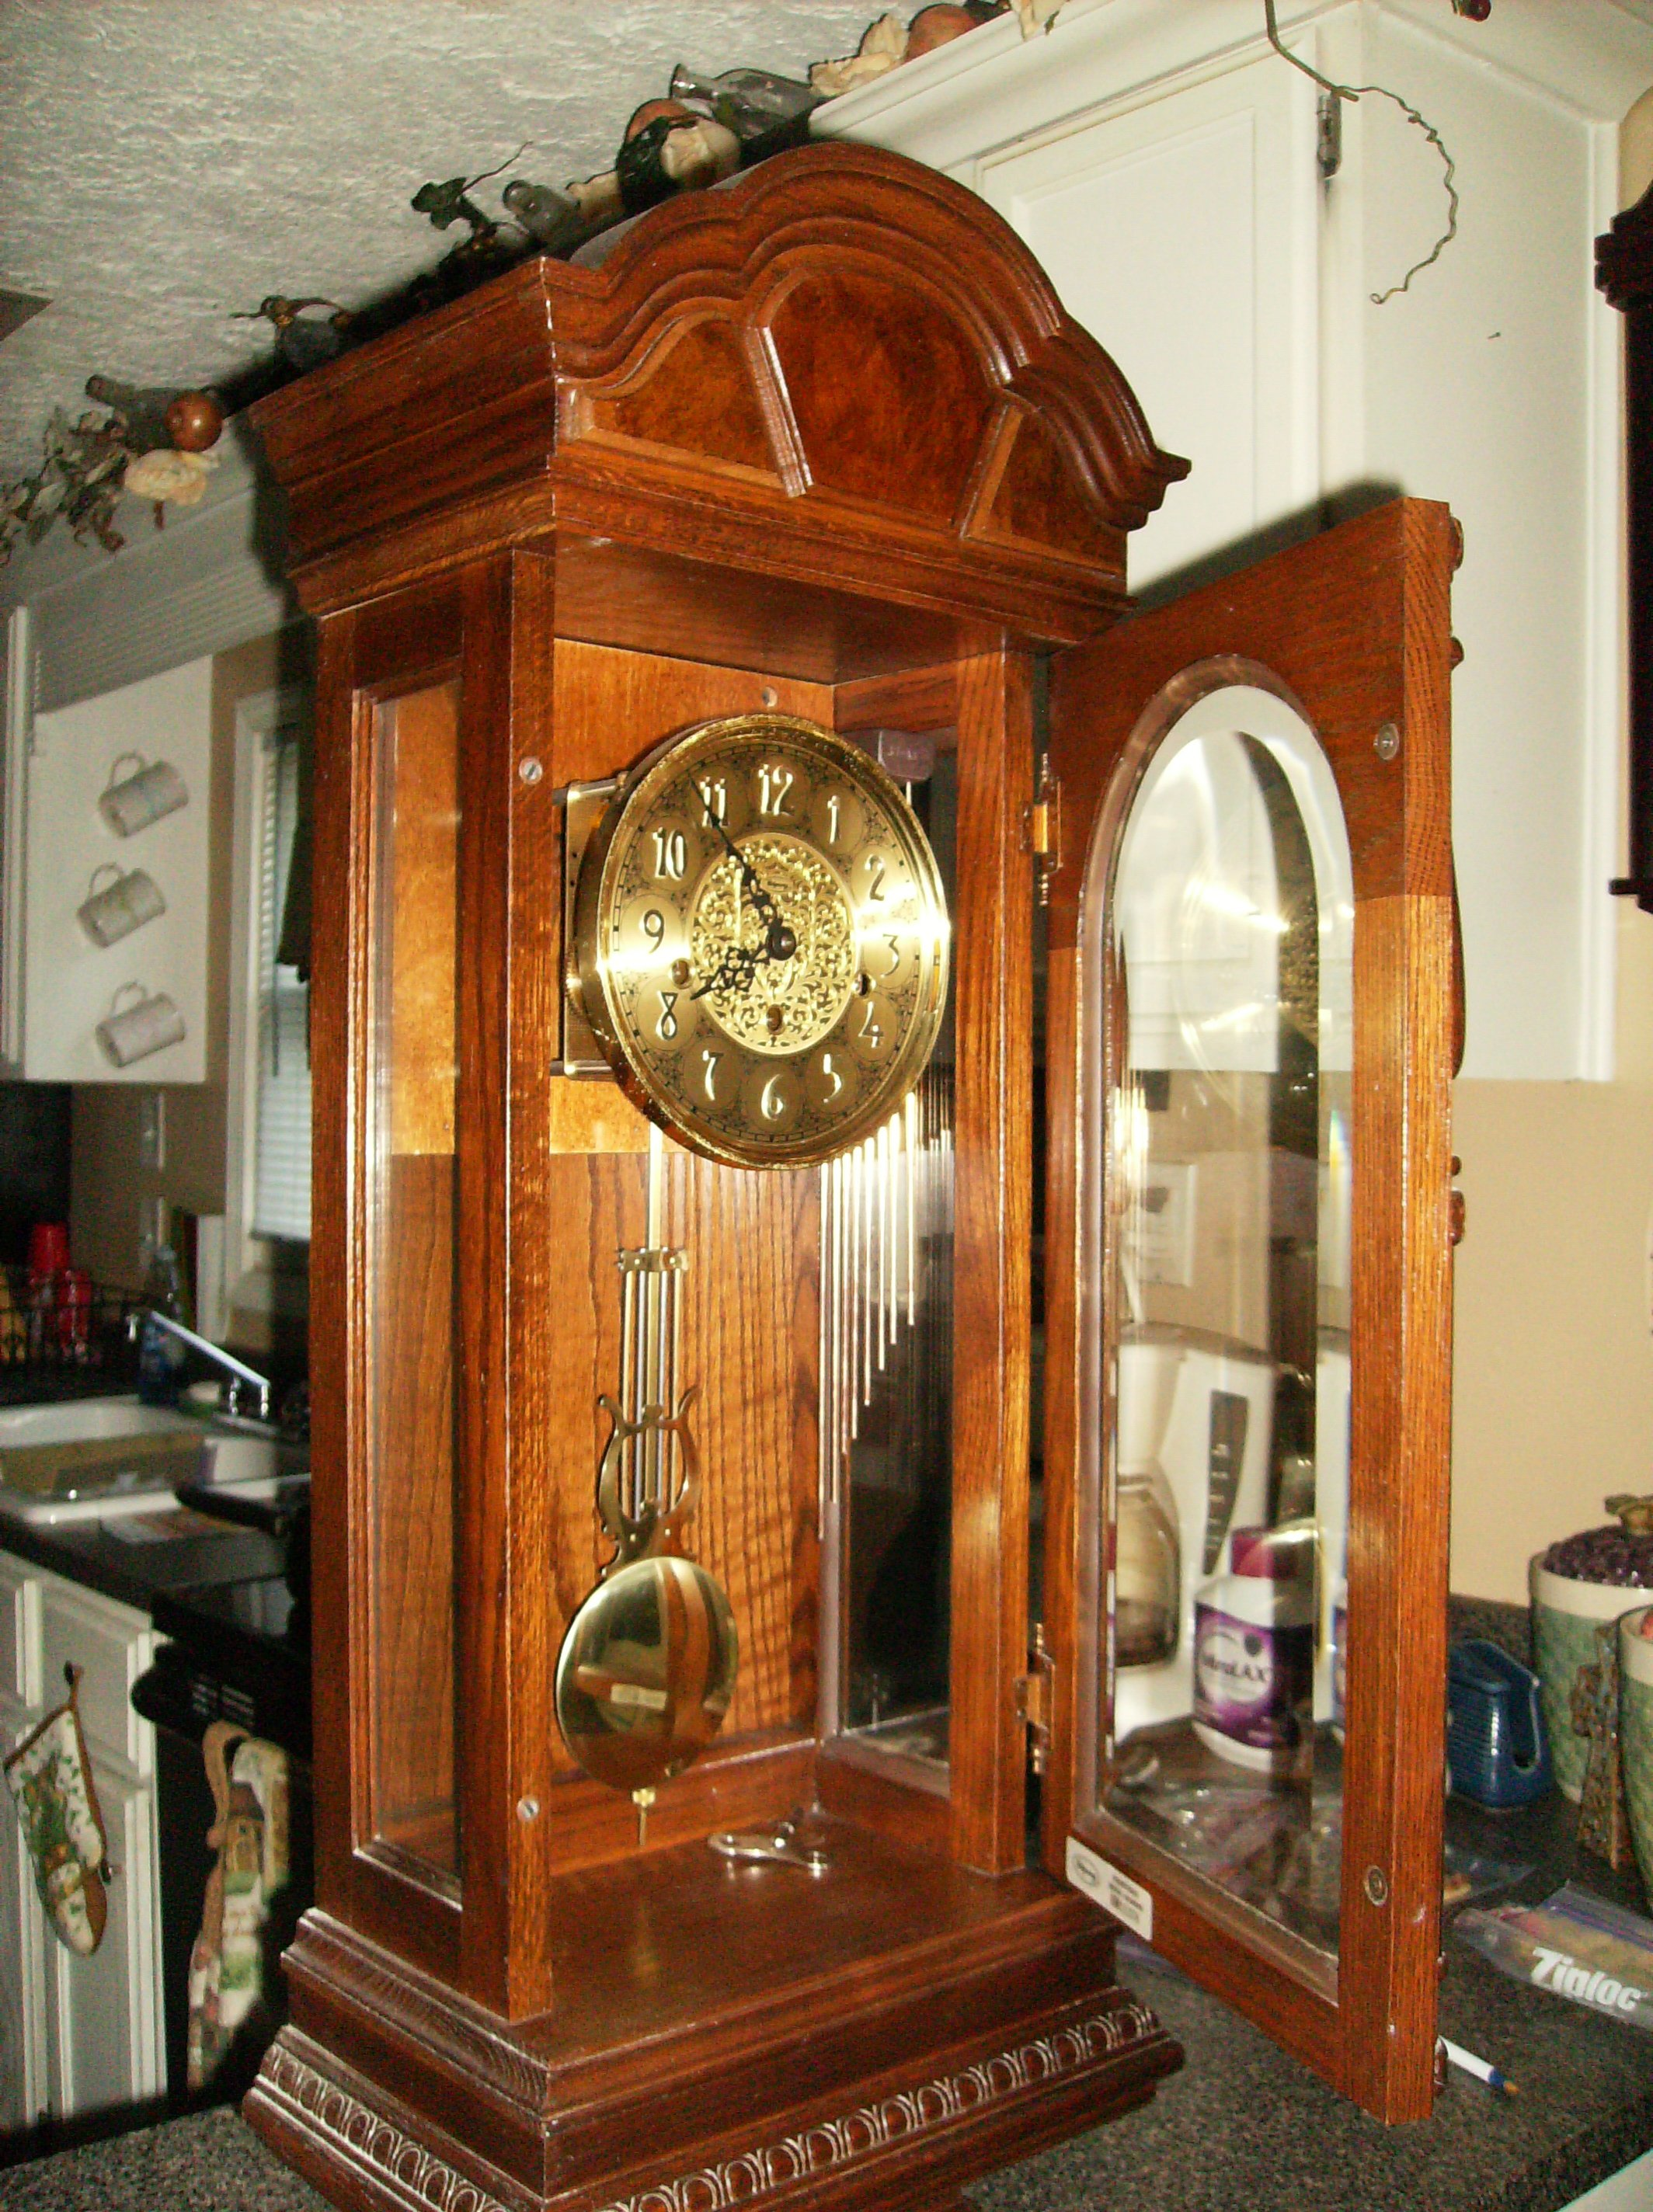 I Have A Ridgeway Key Wind Wall Clock With Pendulum From